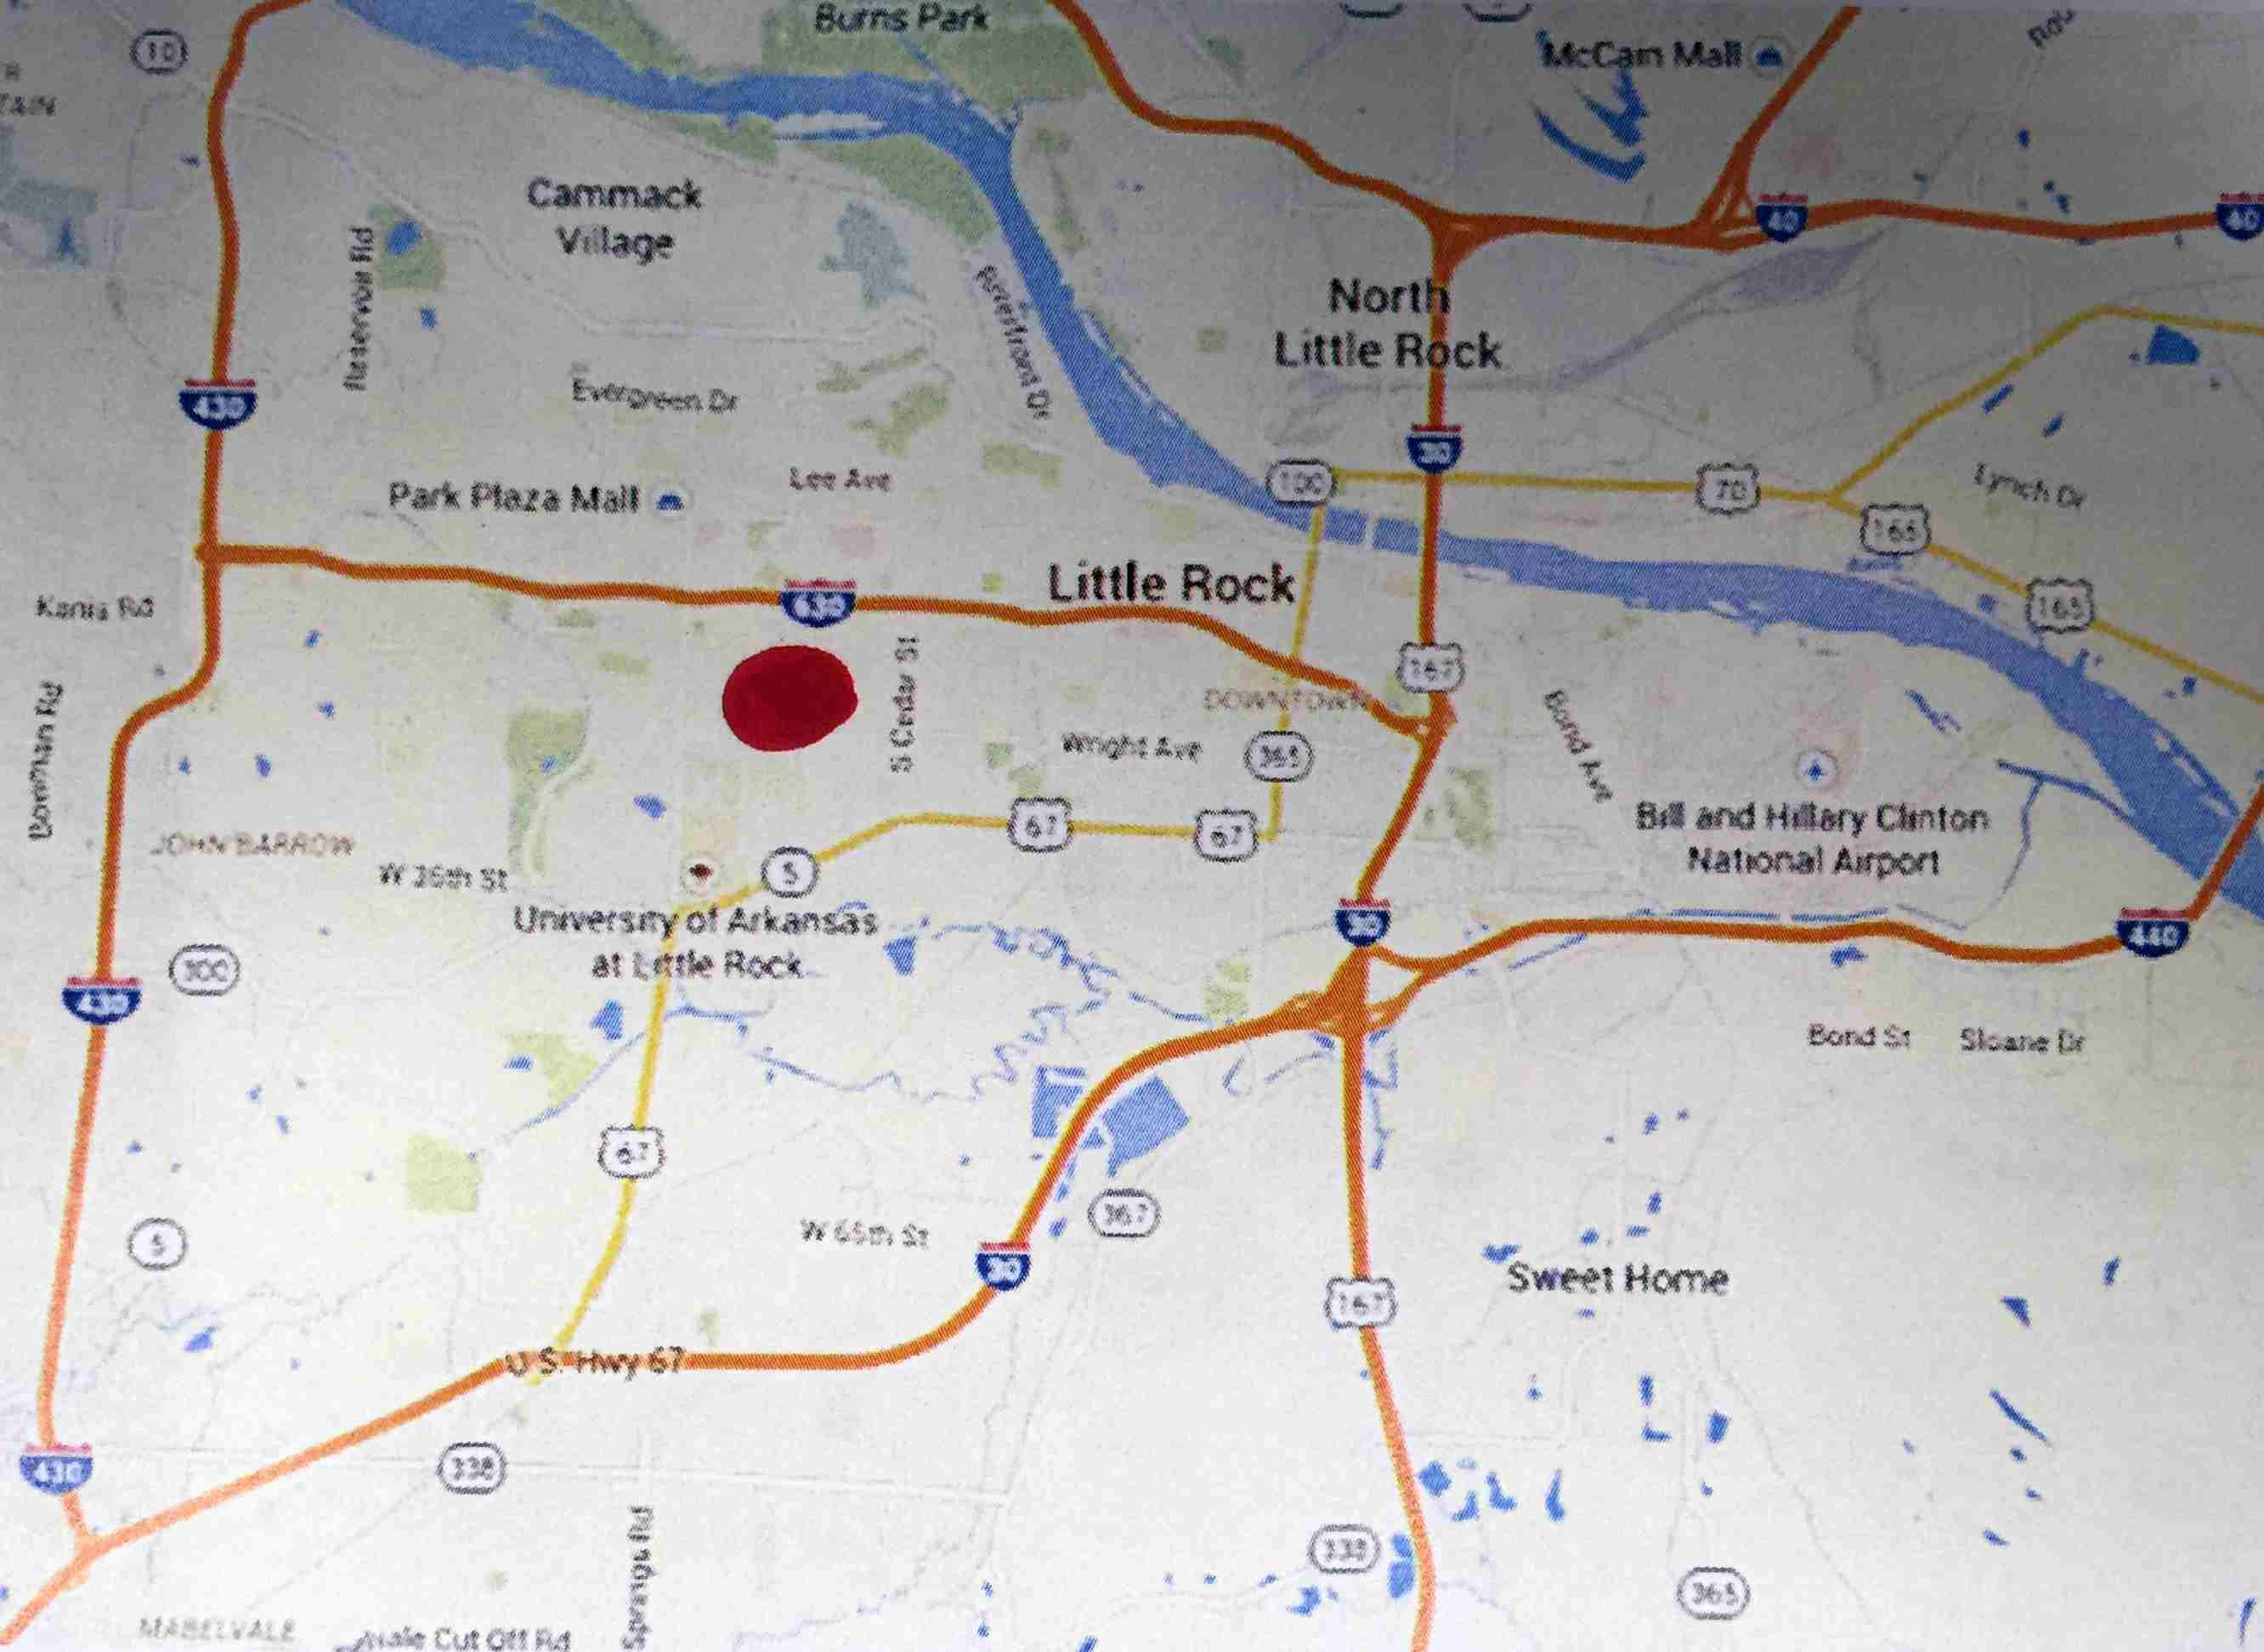 The Most Dangerous Areas in Little Rock, Arkansas